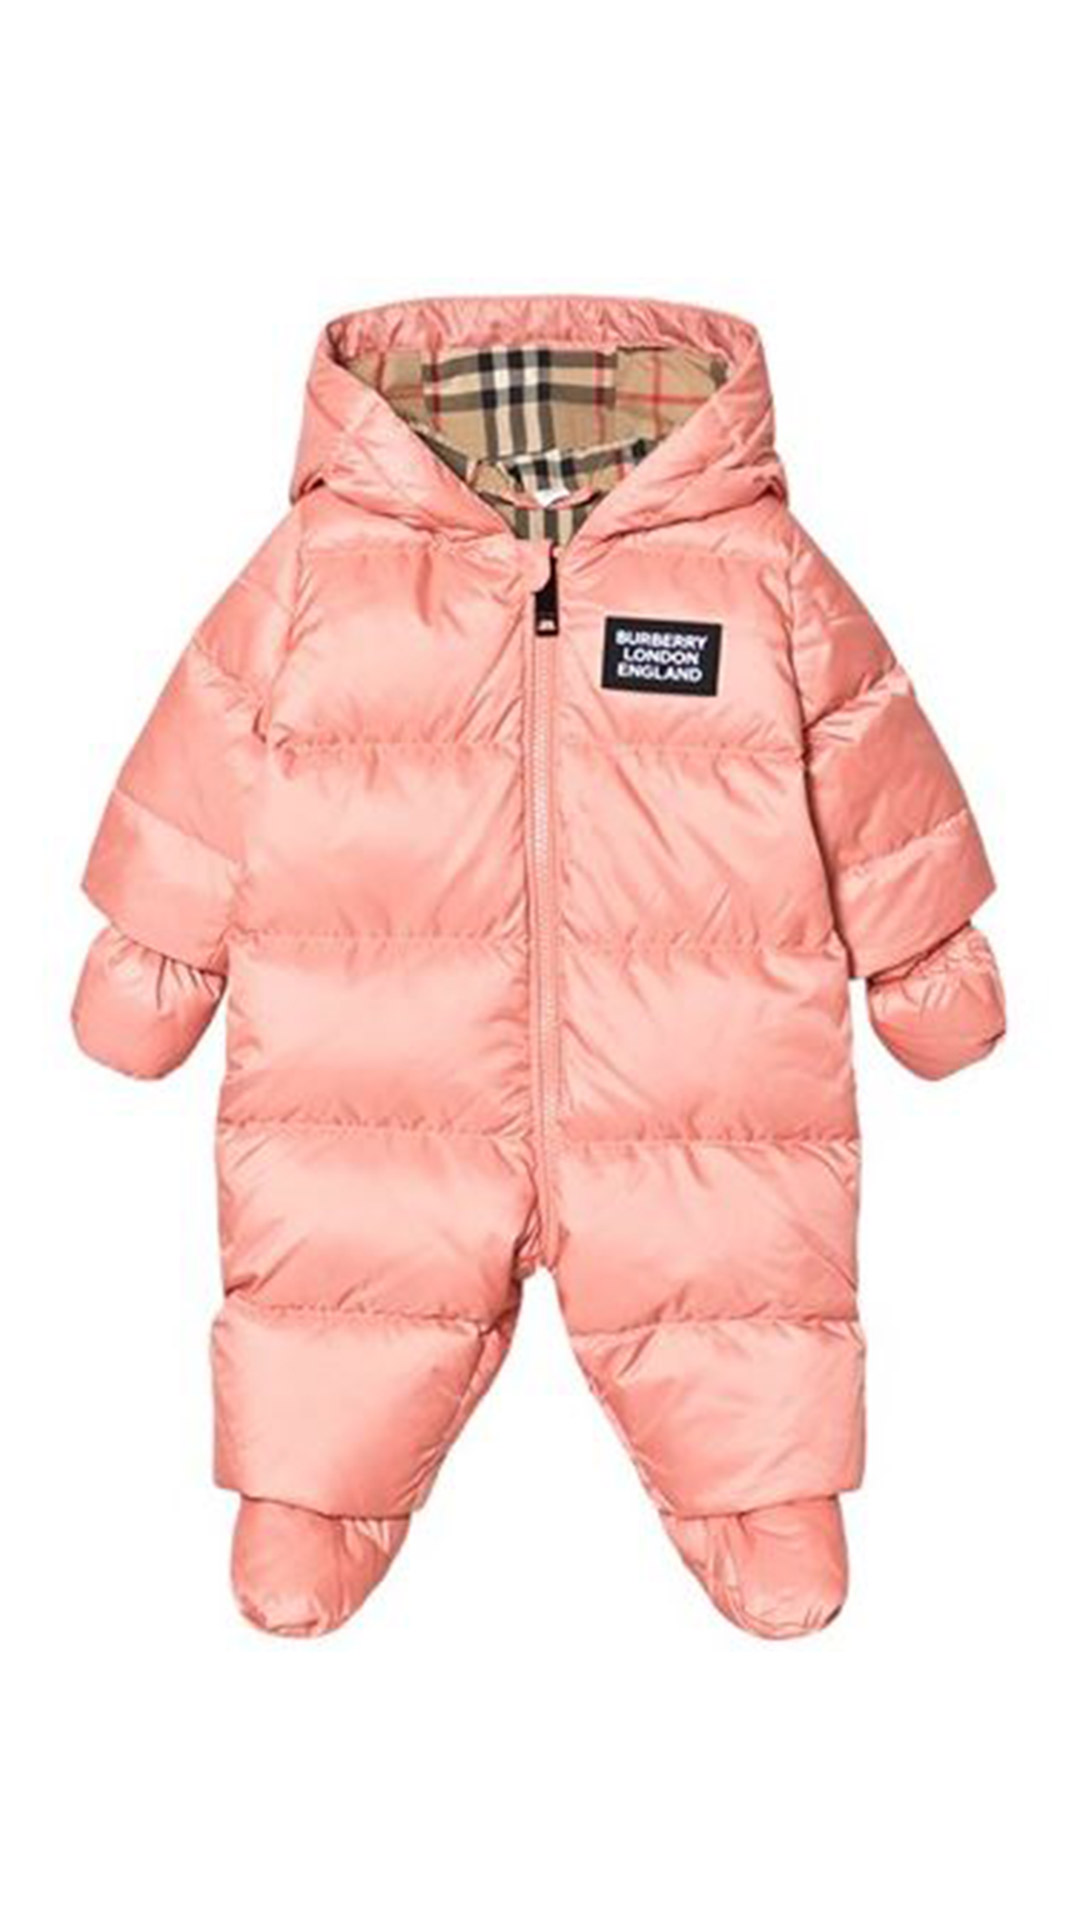 BURBERRY Peach Baby Snowsuit